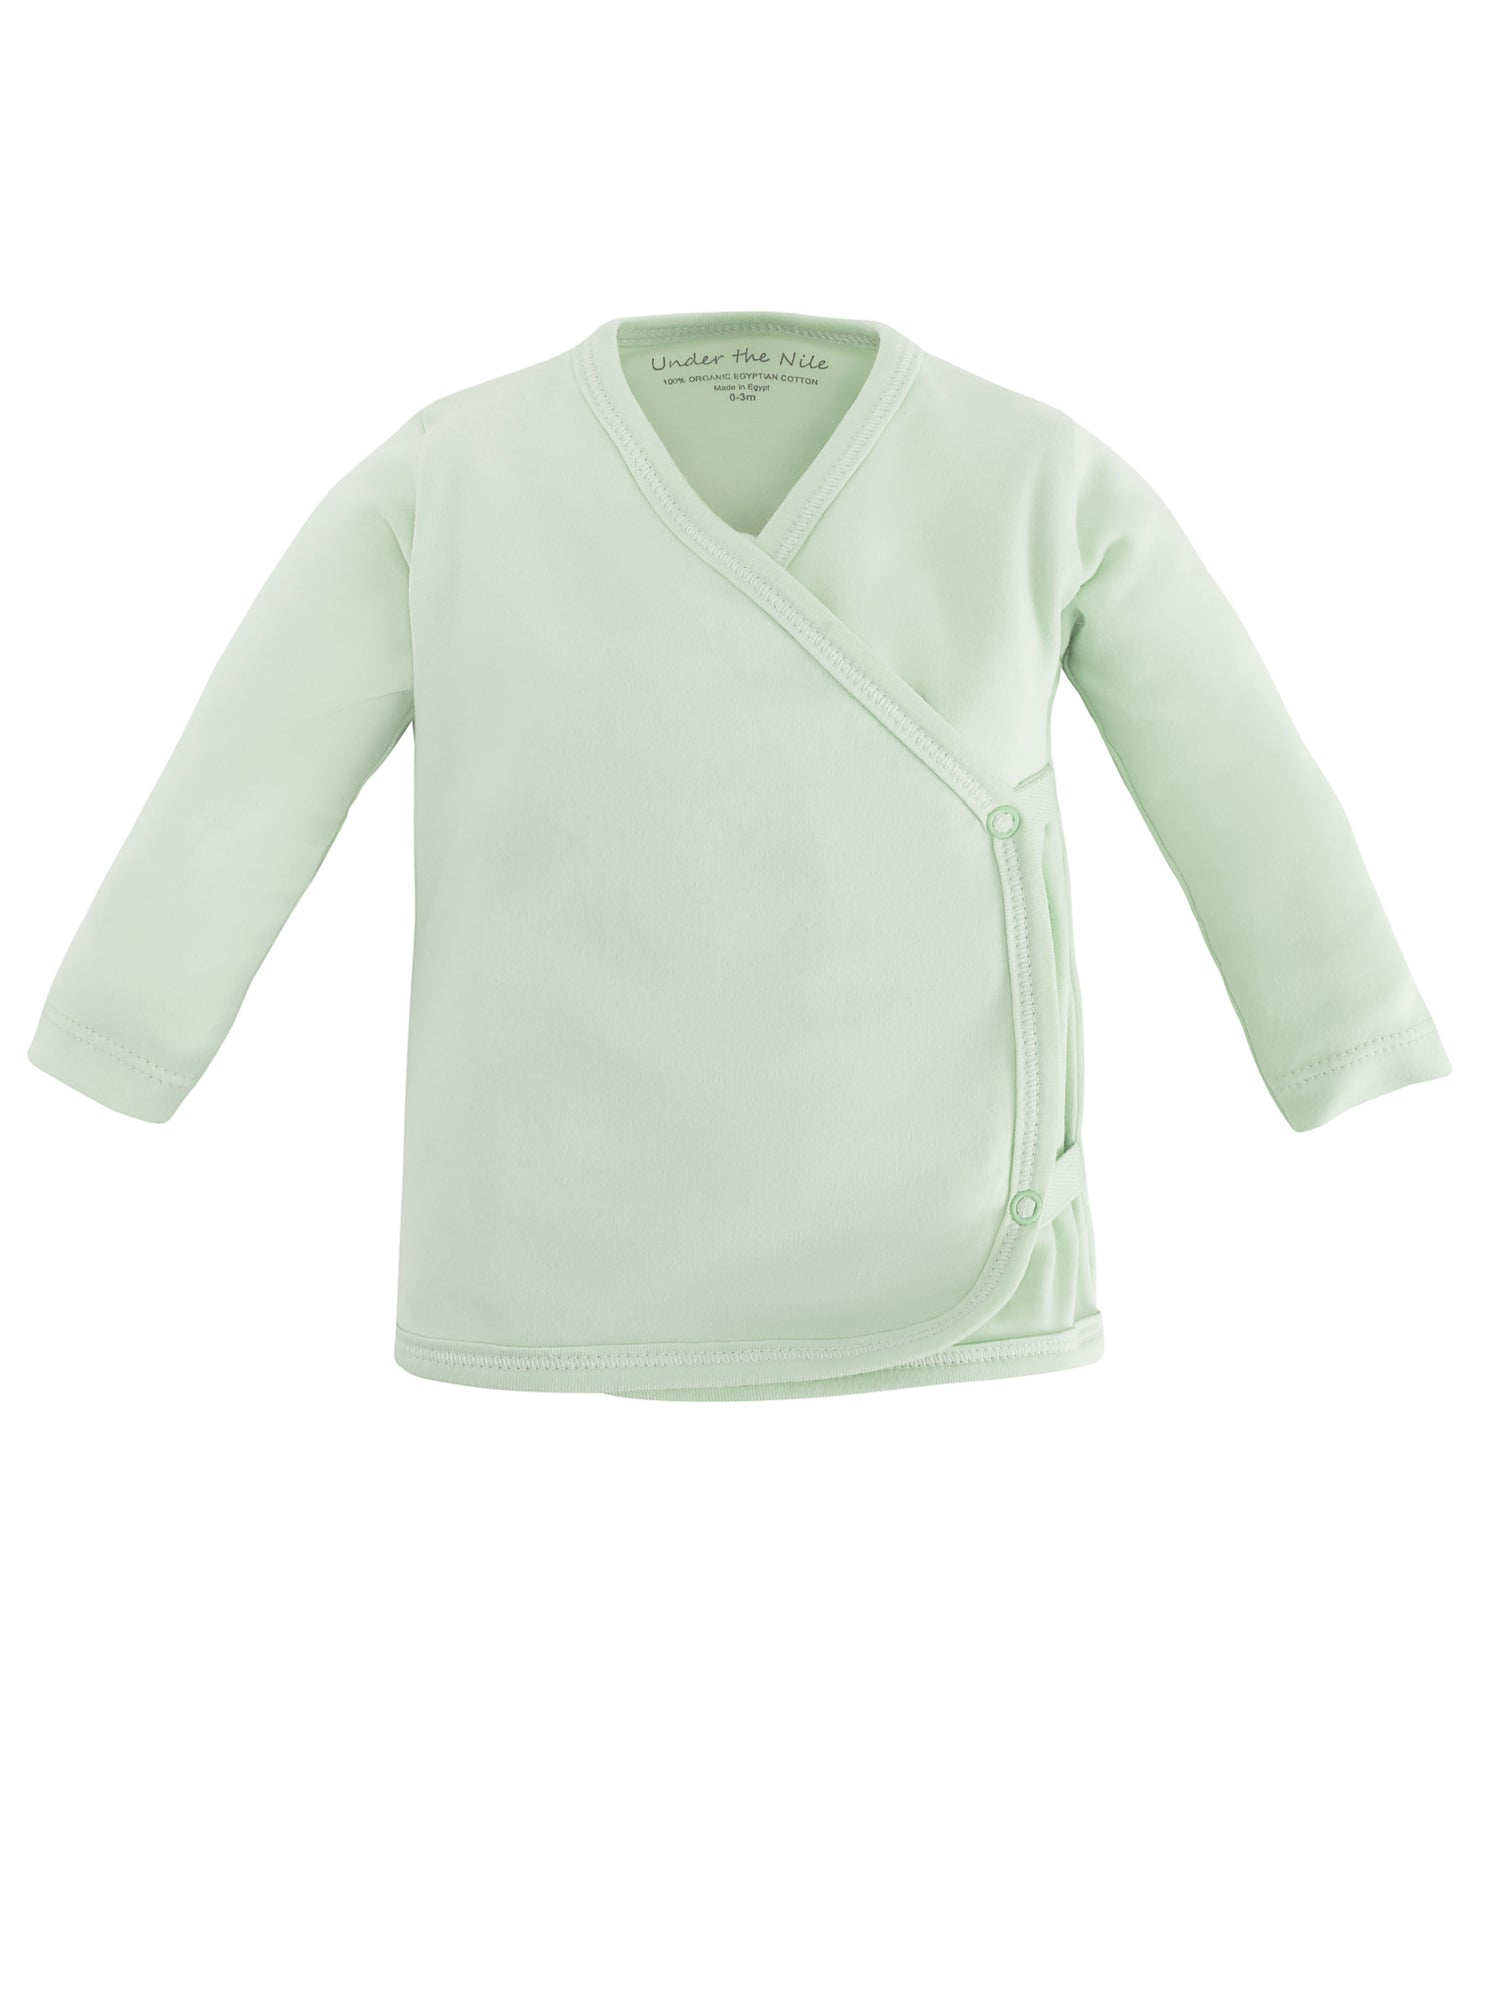 b40dcb864 Organic Cotton Sage Green Long Sleeve Side-Snap T-shirt for Baby ...